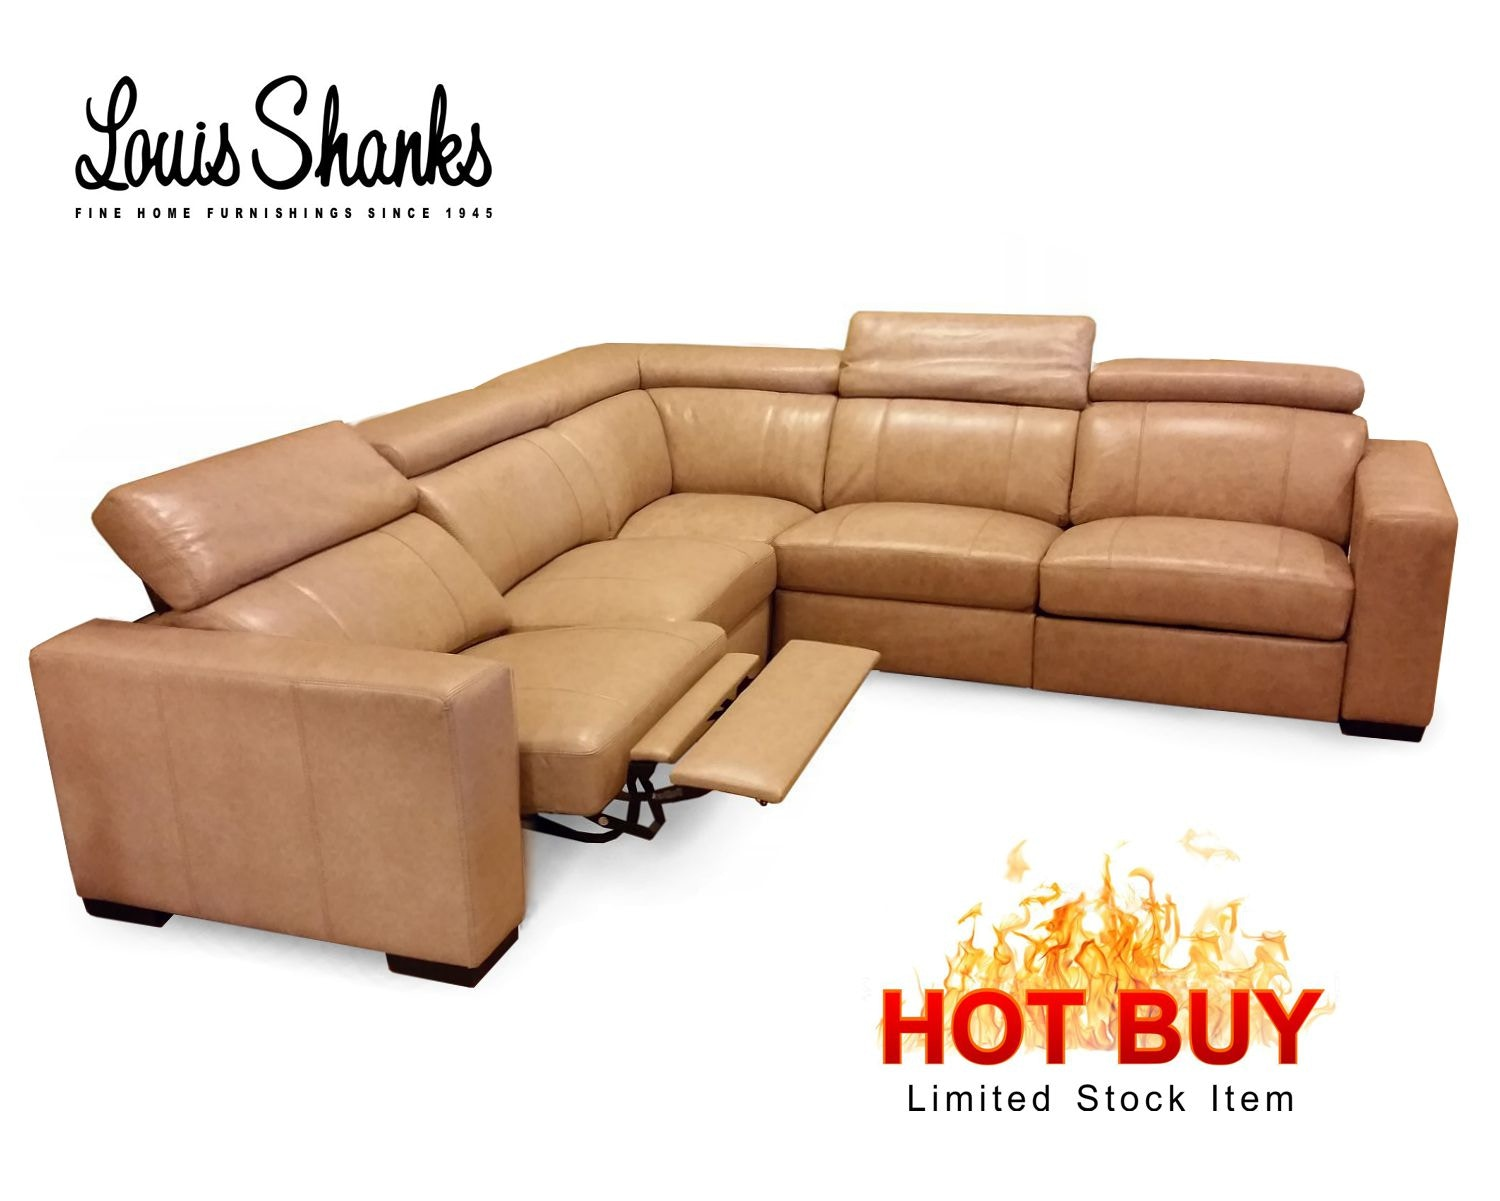 Living Room Sectionals Louis Shanks Austin San Antonio TX